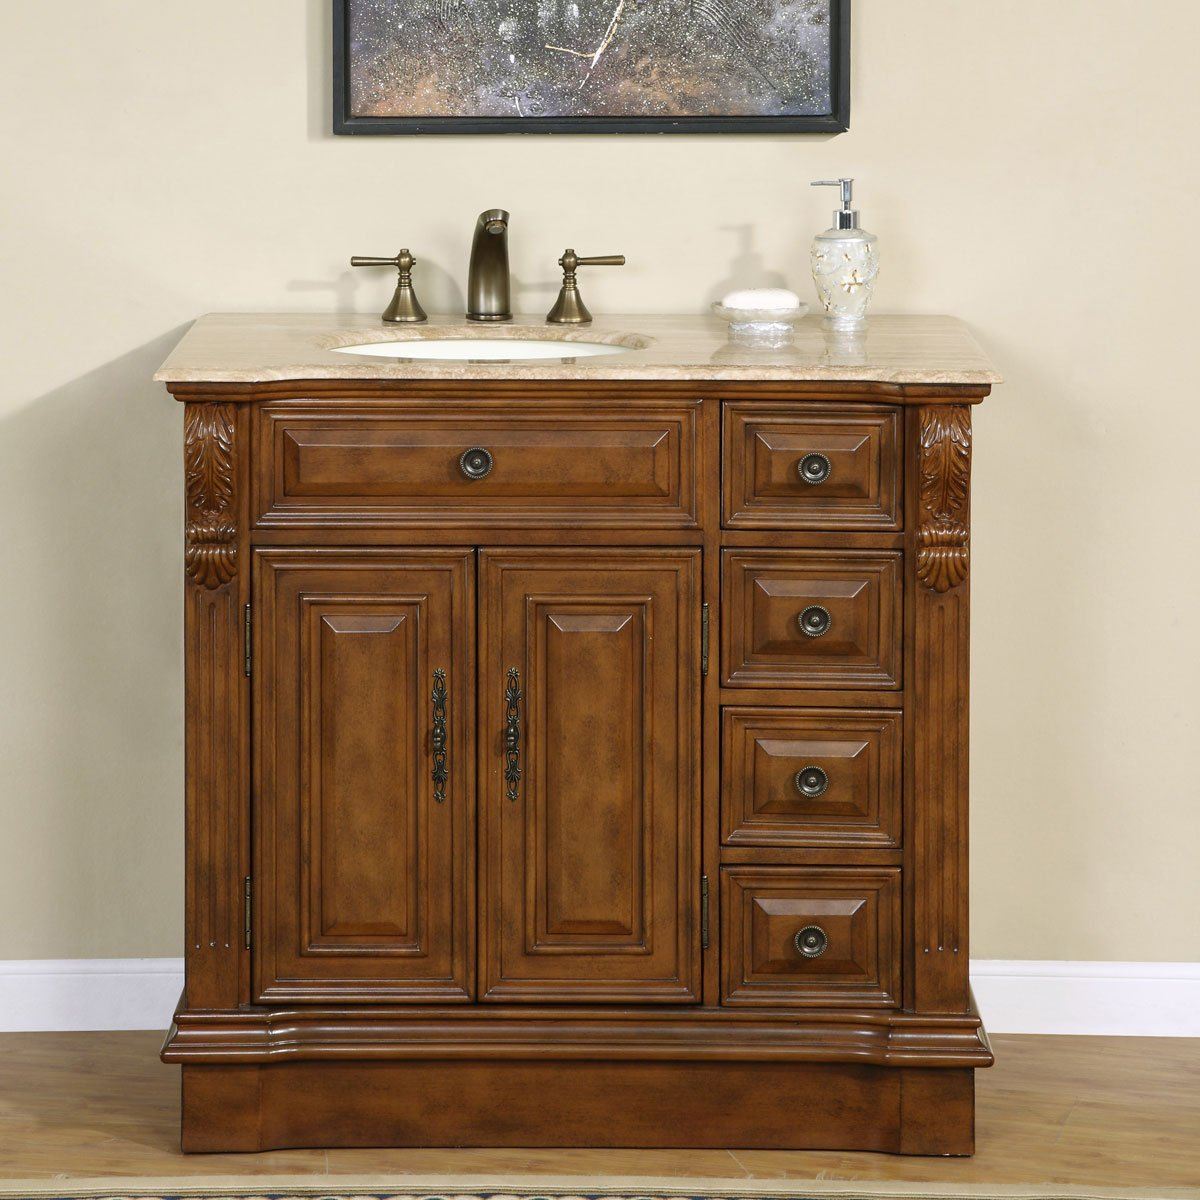 Silkroad Exclusive Off Center Single Left Sink Bathroom Vanity with Furniture Cabinet, 38-Inch by Silkroad Exclusive